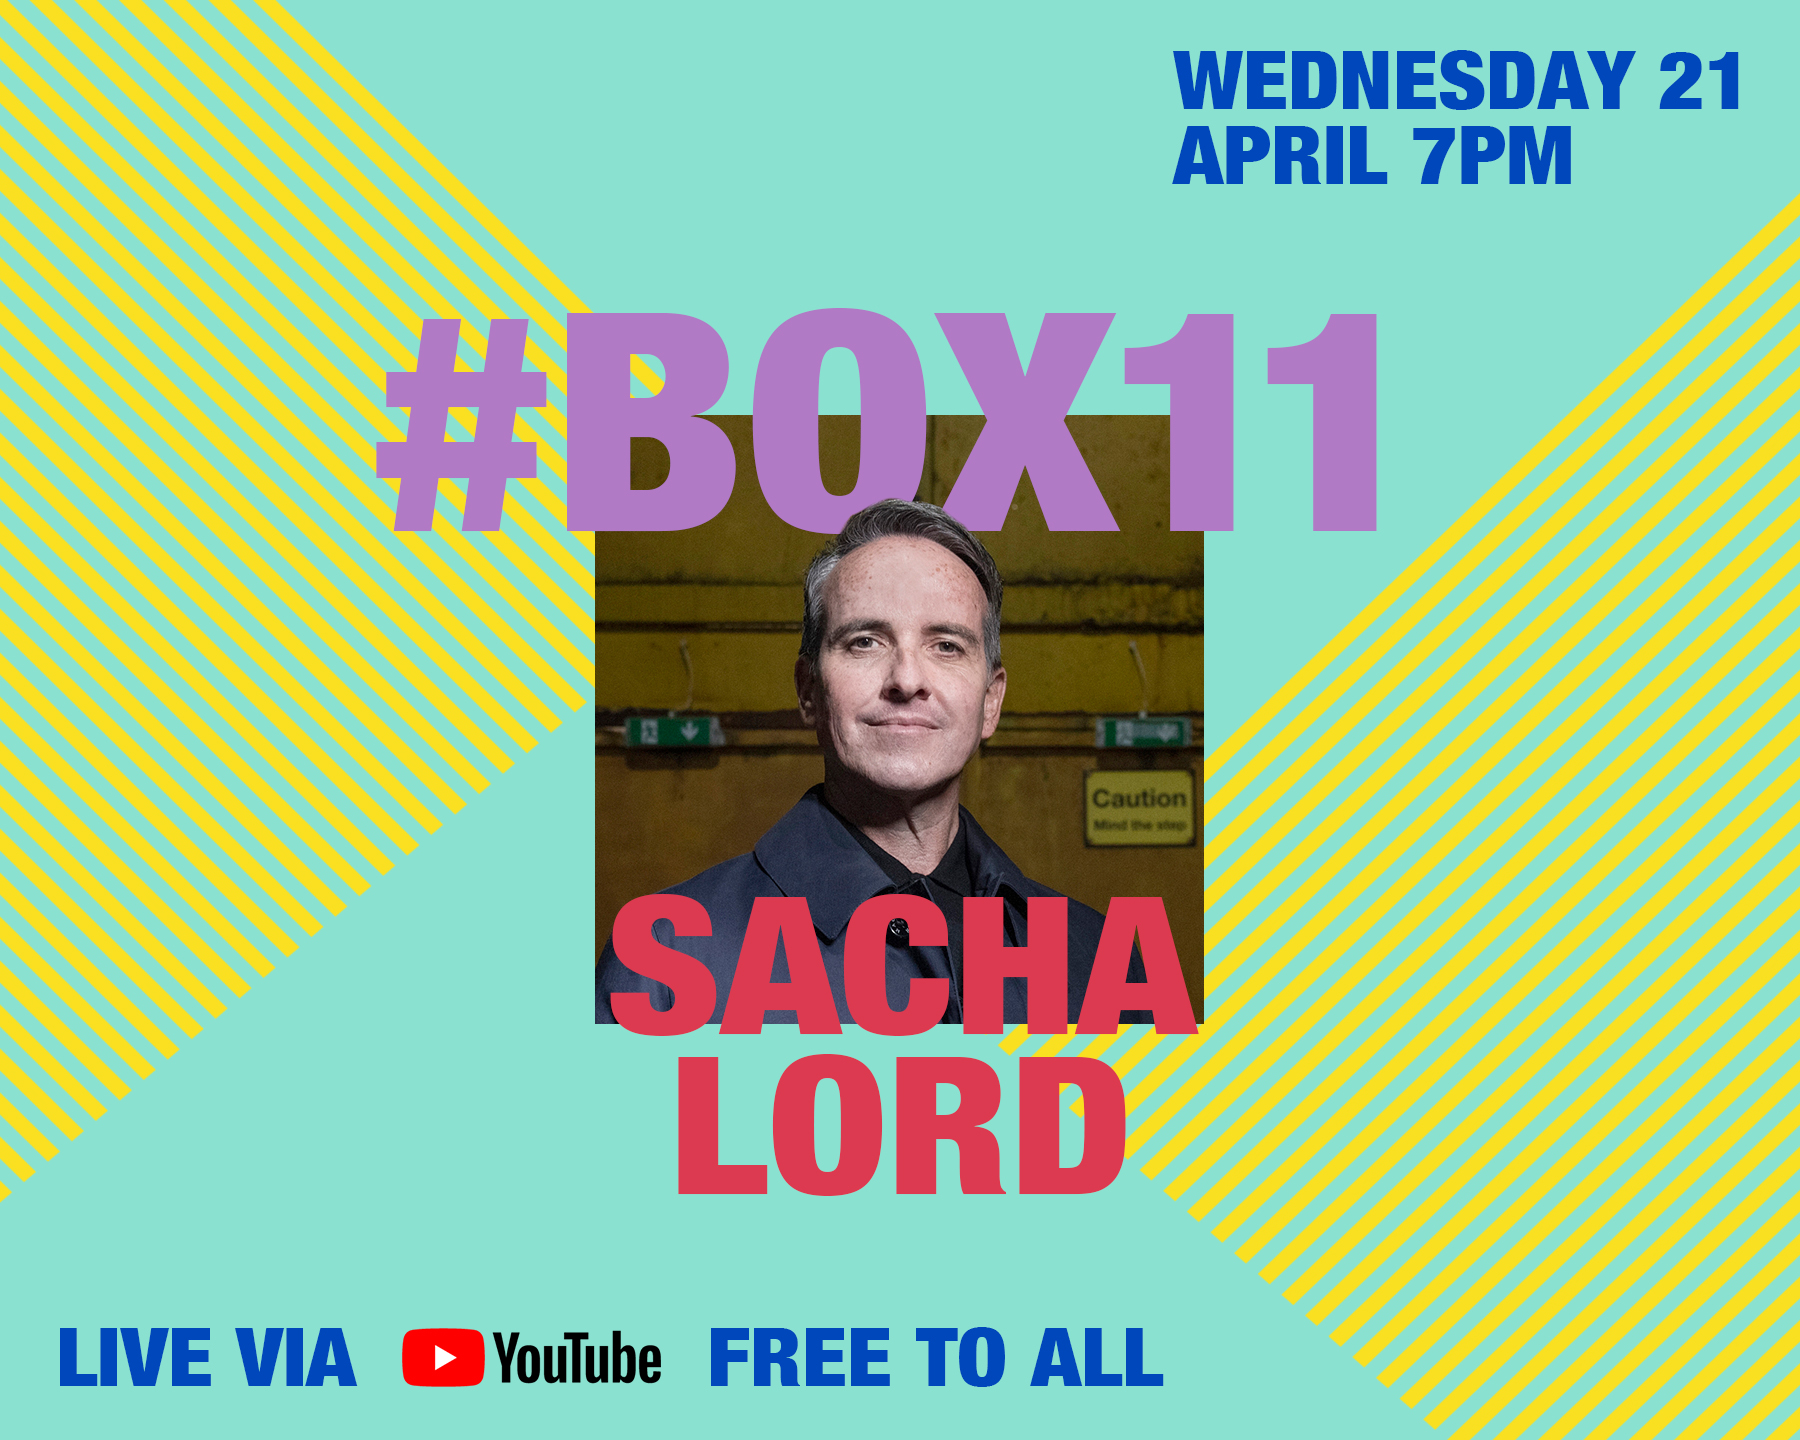 #BOX11: Sacha Lord, Co-founder of Warehouse Project, Parklife Festival, and current Nightime Economy adviser for Greater Manchester